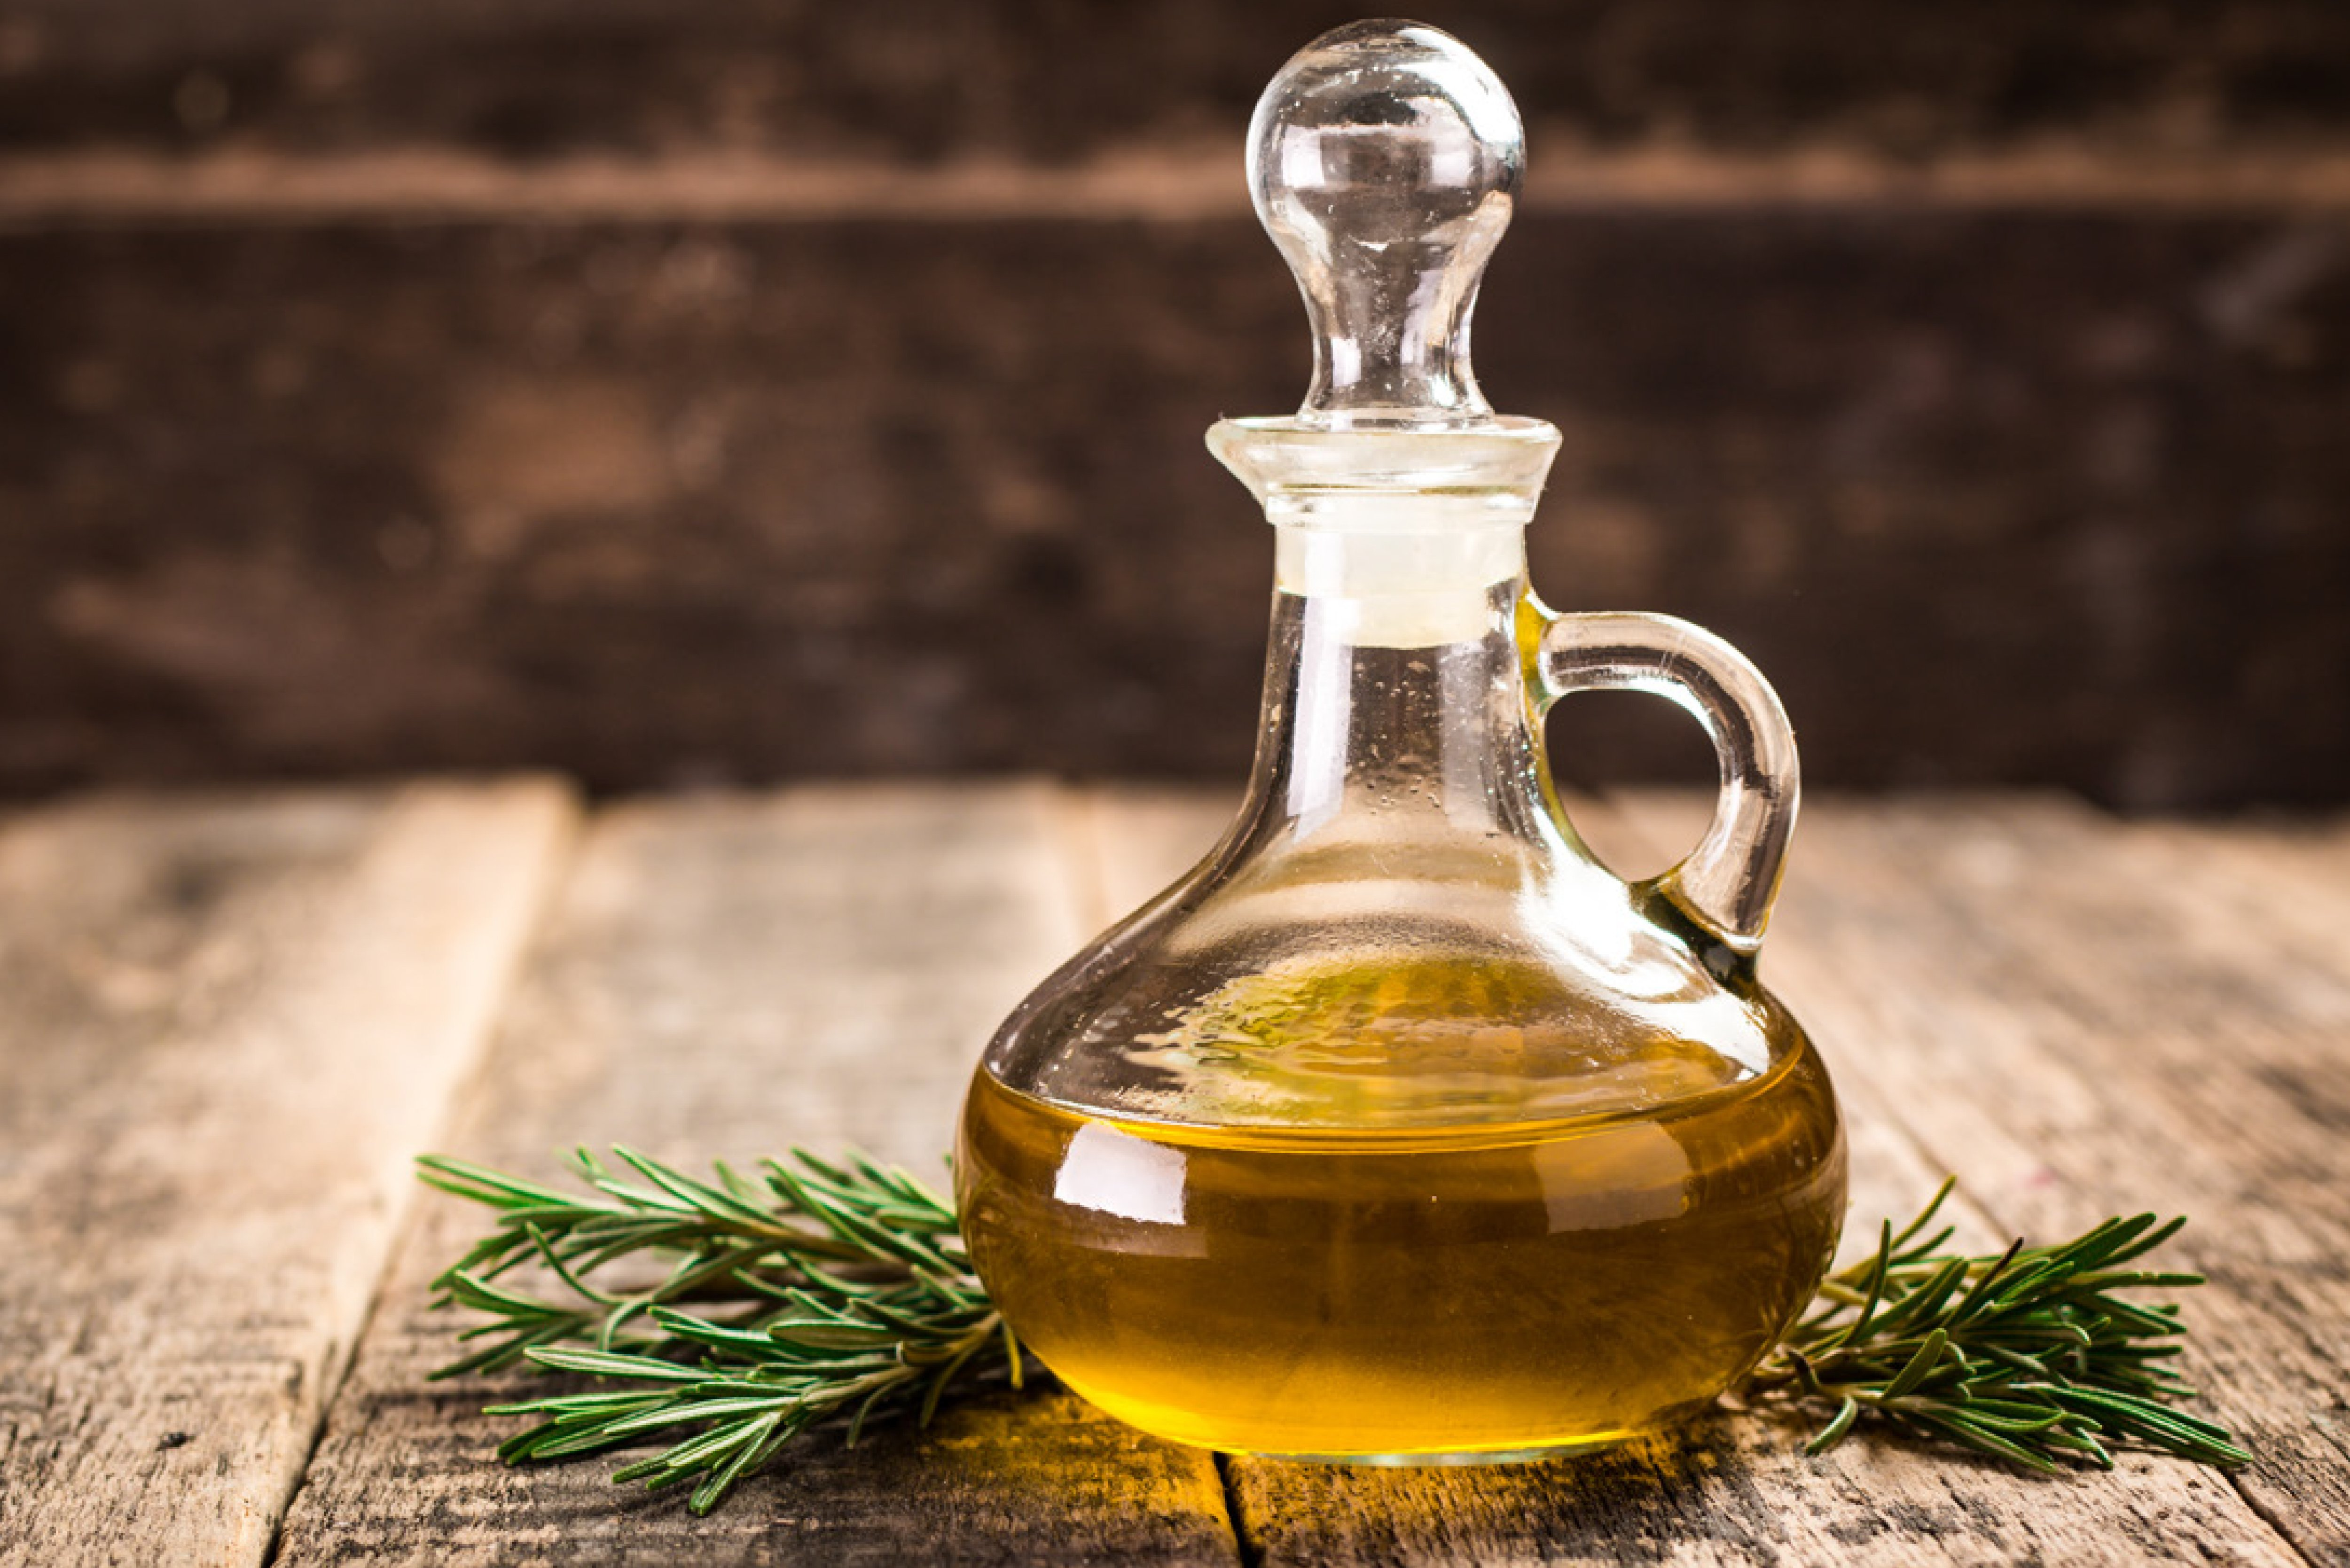 Q&A – Can You Cook with Essential Oils?